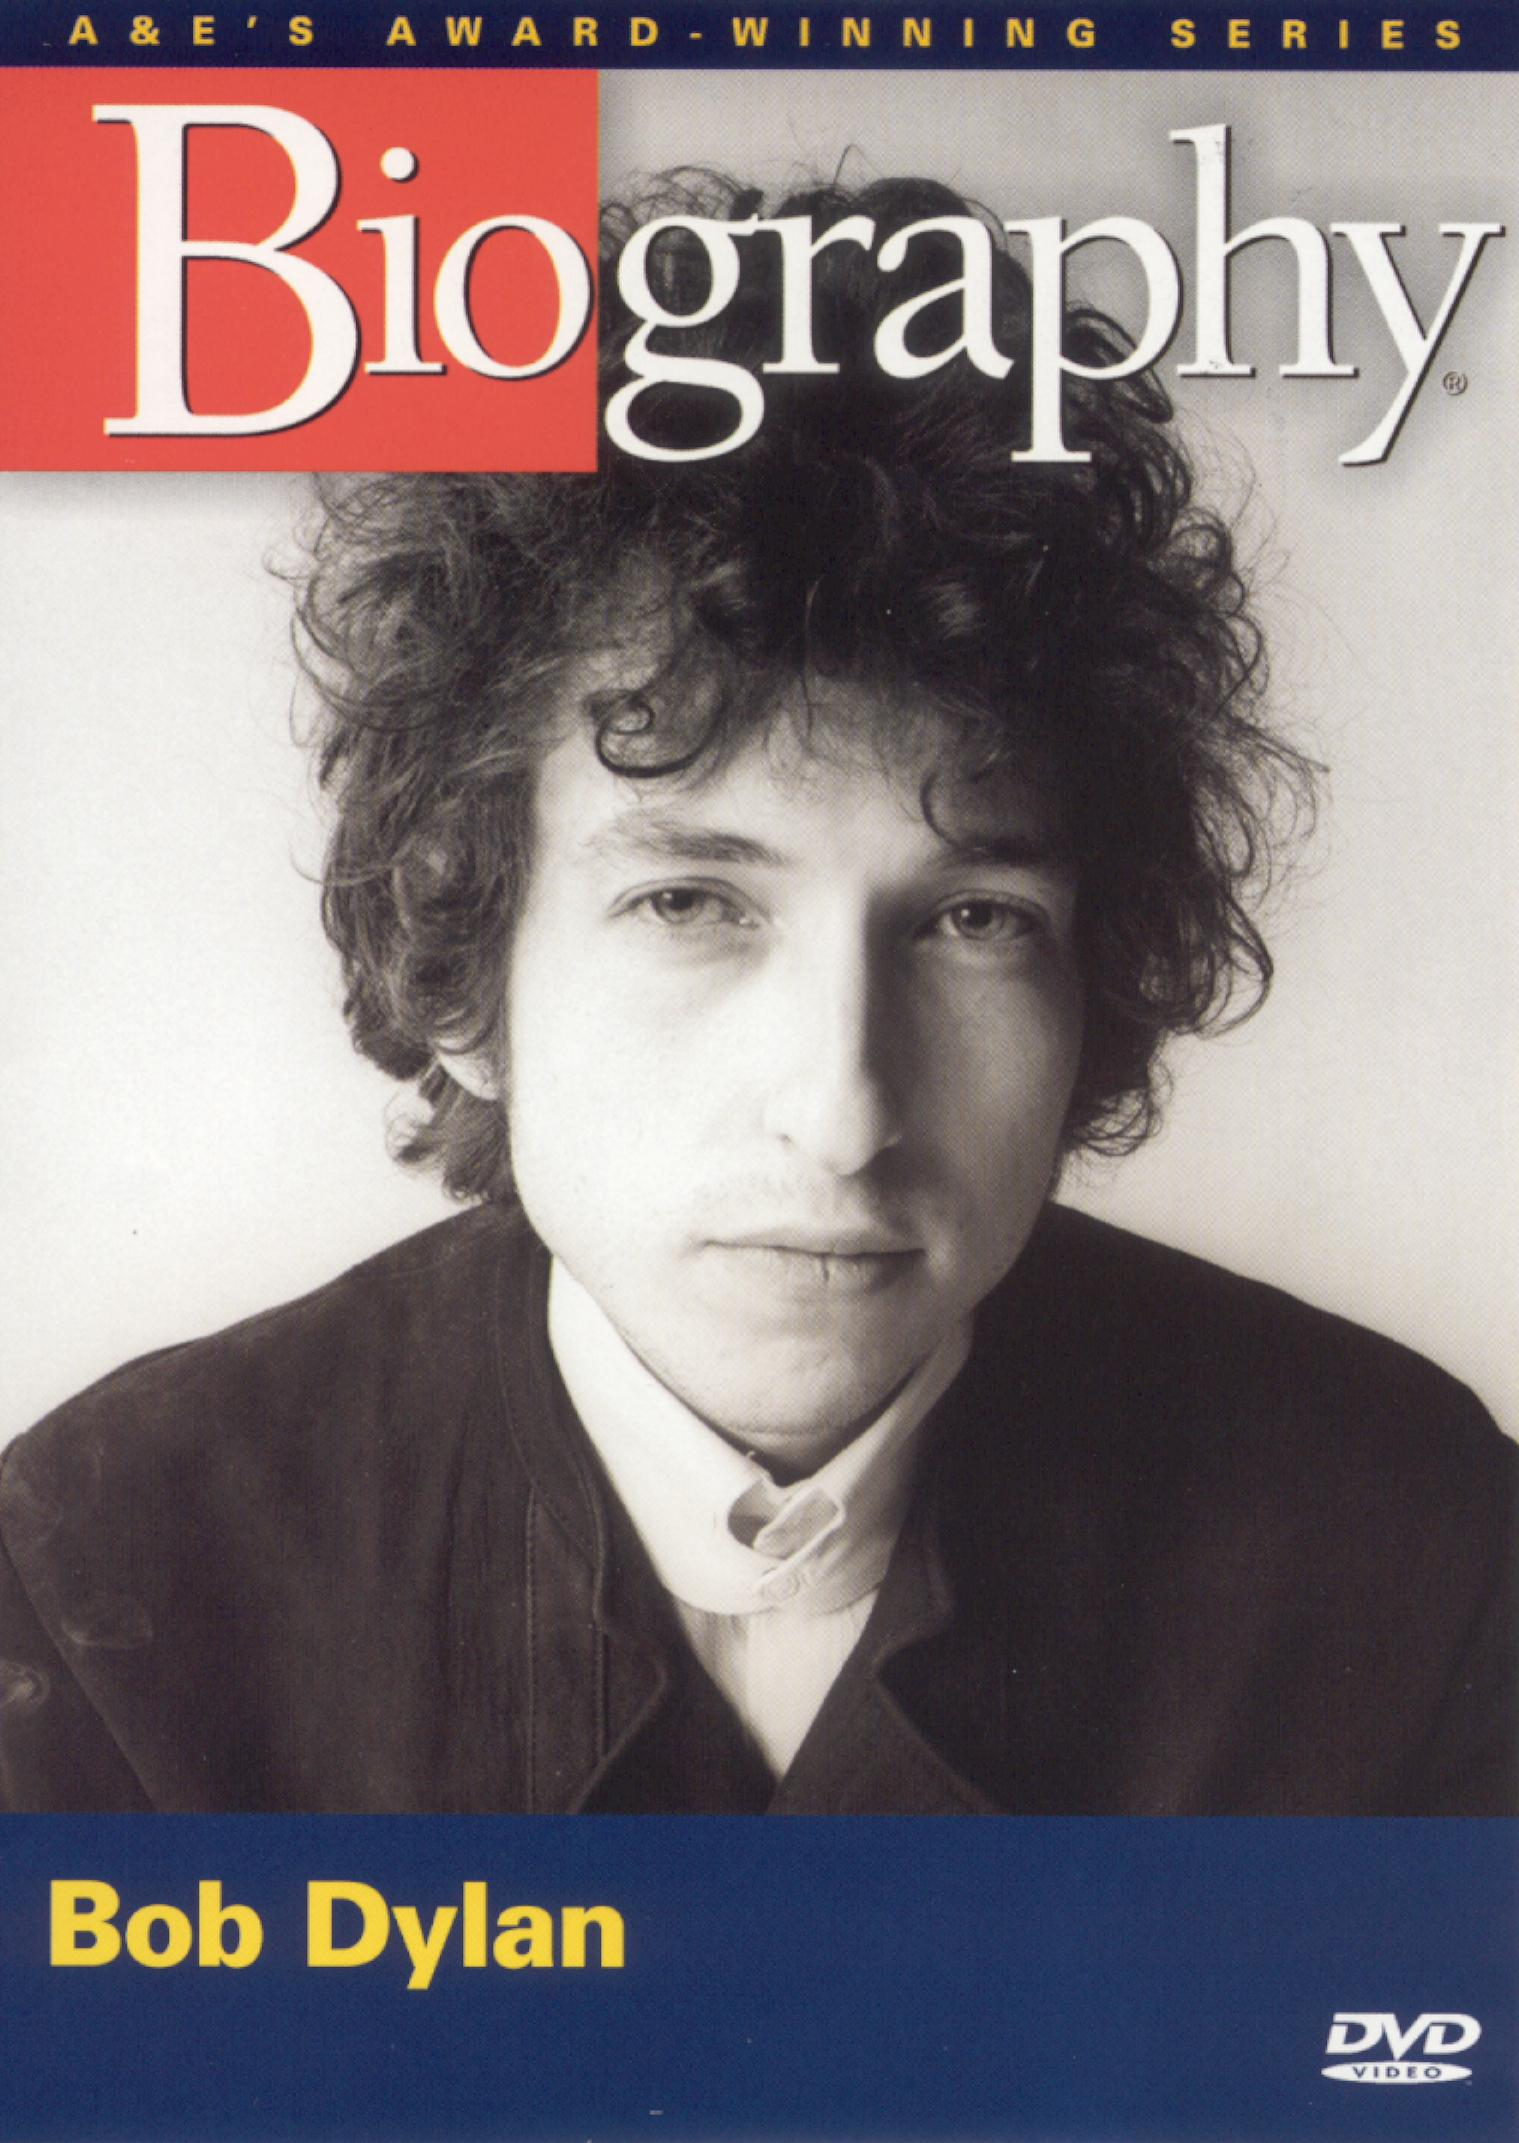 a biography of bob dylan Compilation albums edit bob dylan's greatest hits, vol 2 (1971) masterpieces (1978) biograph (1985) greatest hits volume 3 (1994) blues (2006) pure dylan, an intimate look at bob dylan (2011).